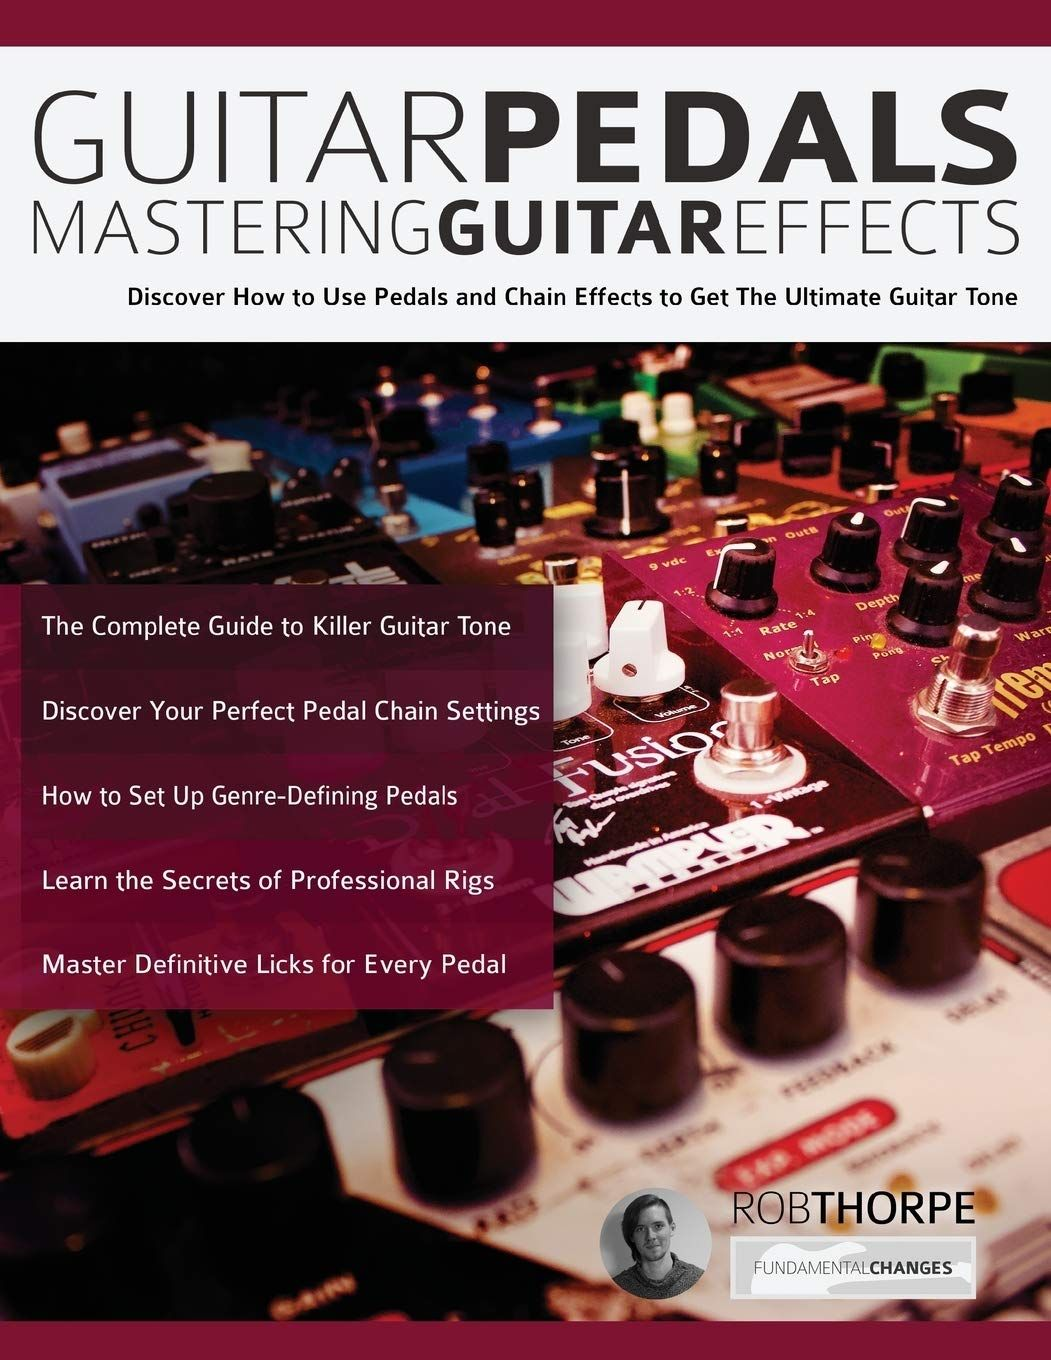 Guitar Pedals – Mastering Guitar Effects: Discover How To Use Pedals and Chain Effects To Get The Ultimate Guitar Tone